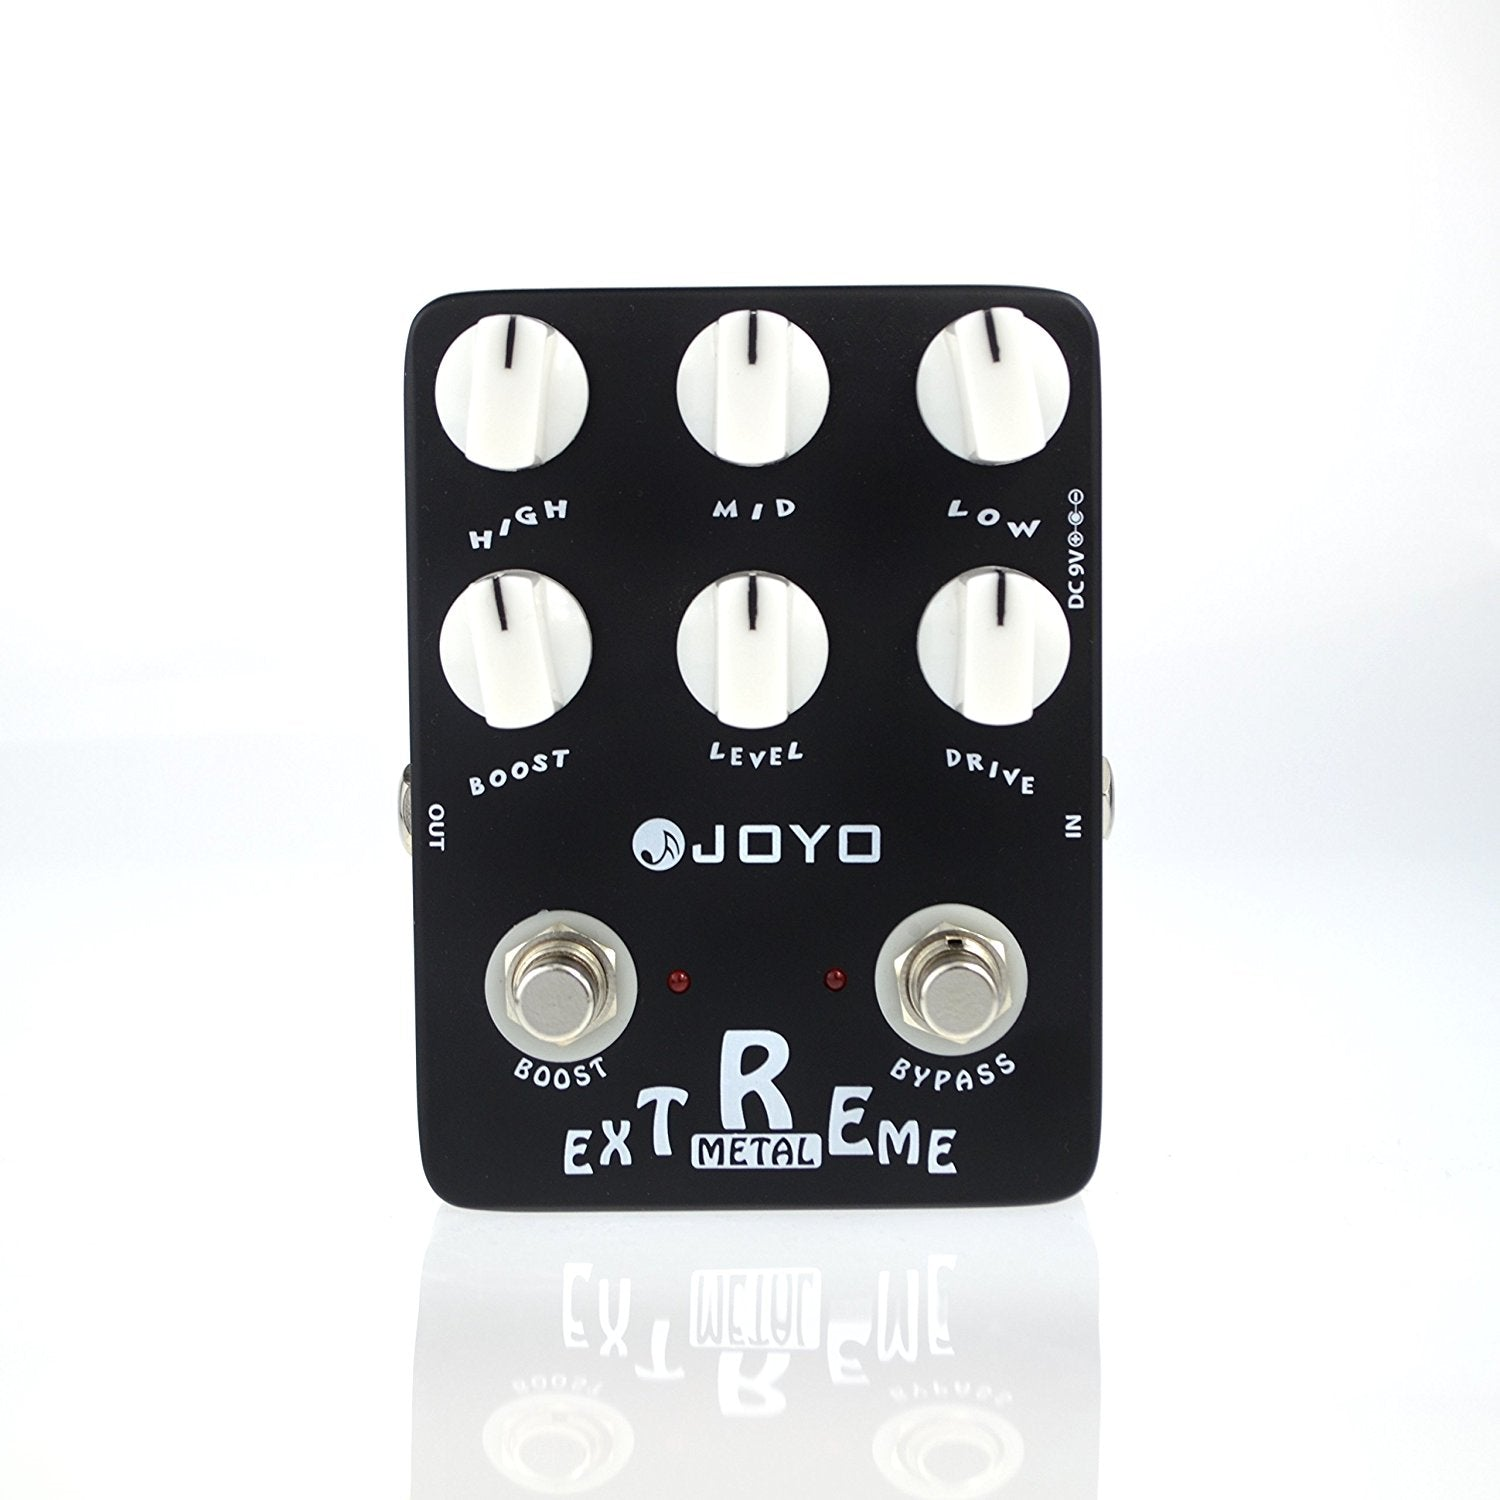 Joyo  JF-17 Extreme Metal, High-Gain Crunch with 3-Band EQ and Gain Boost